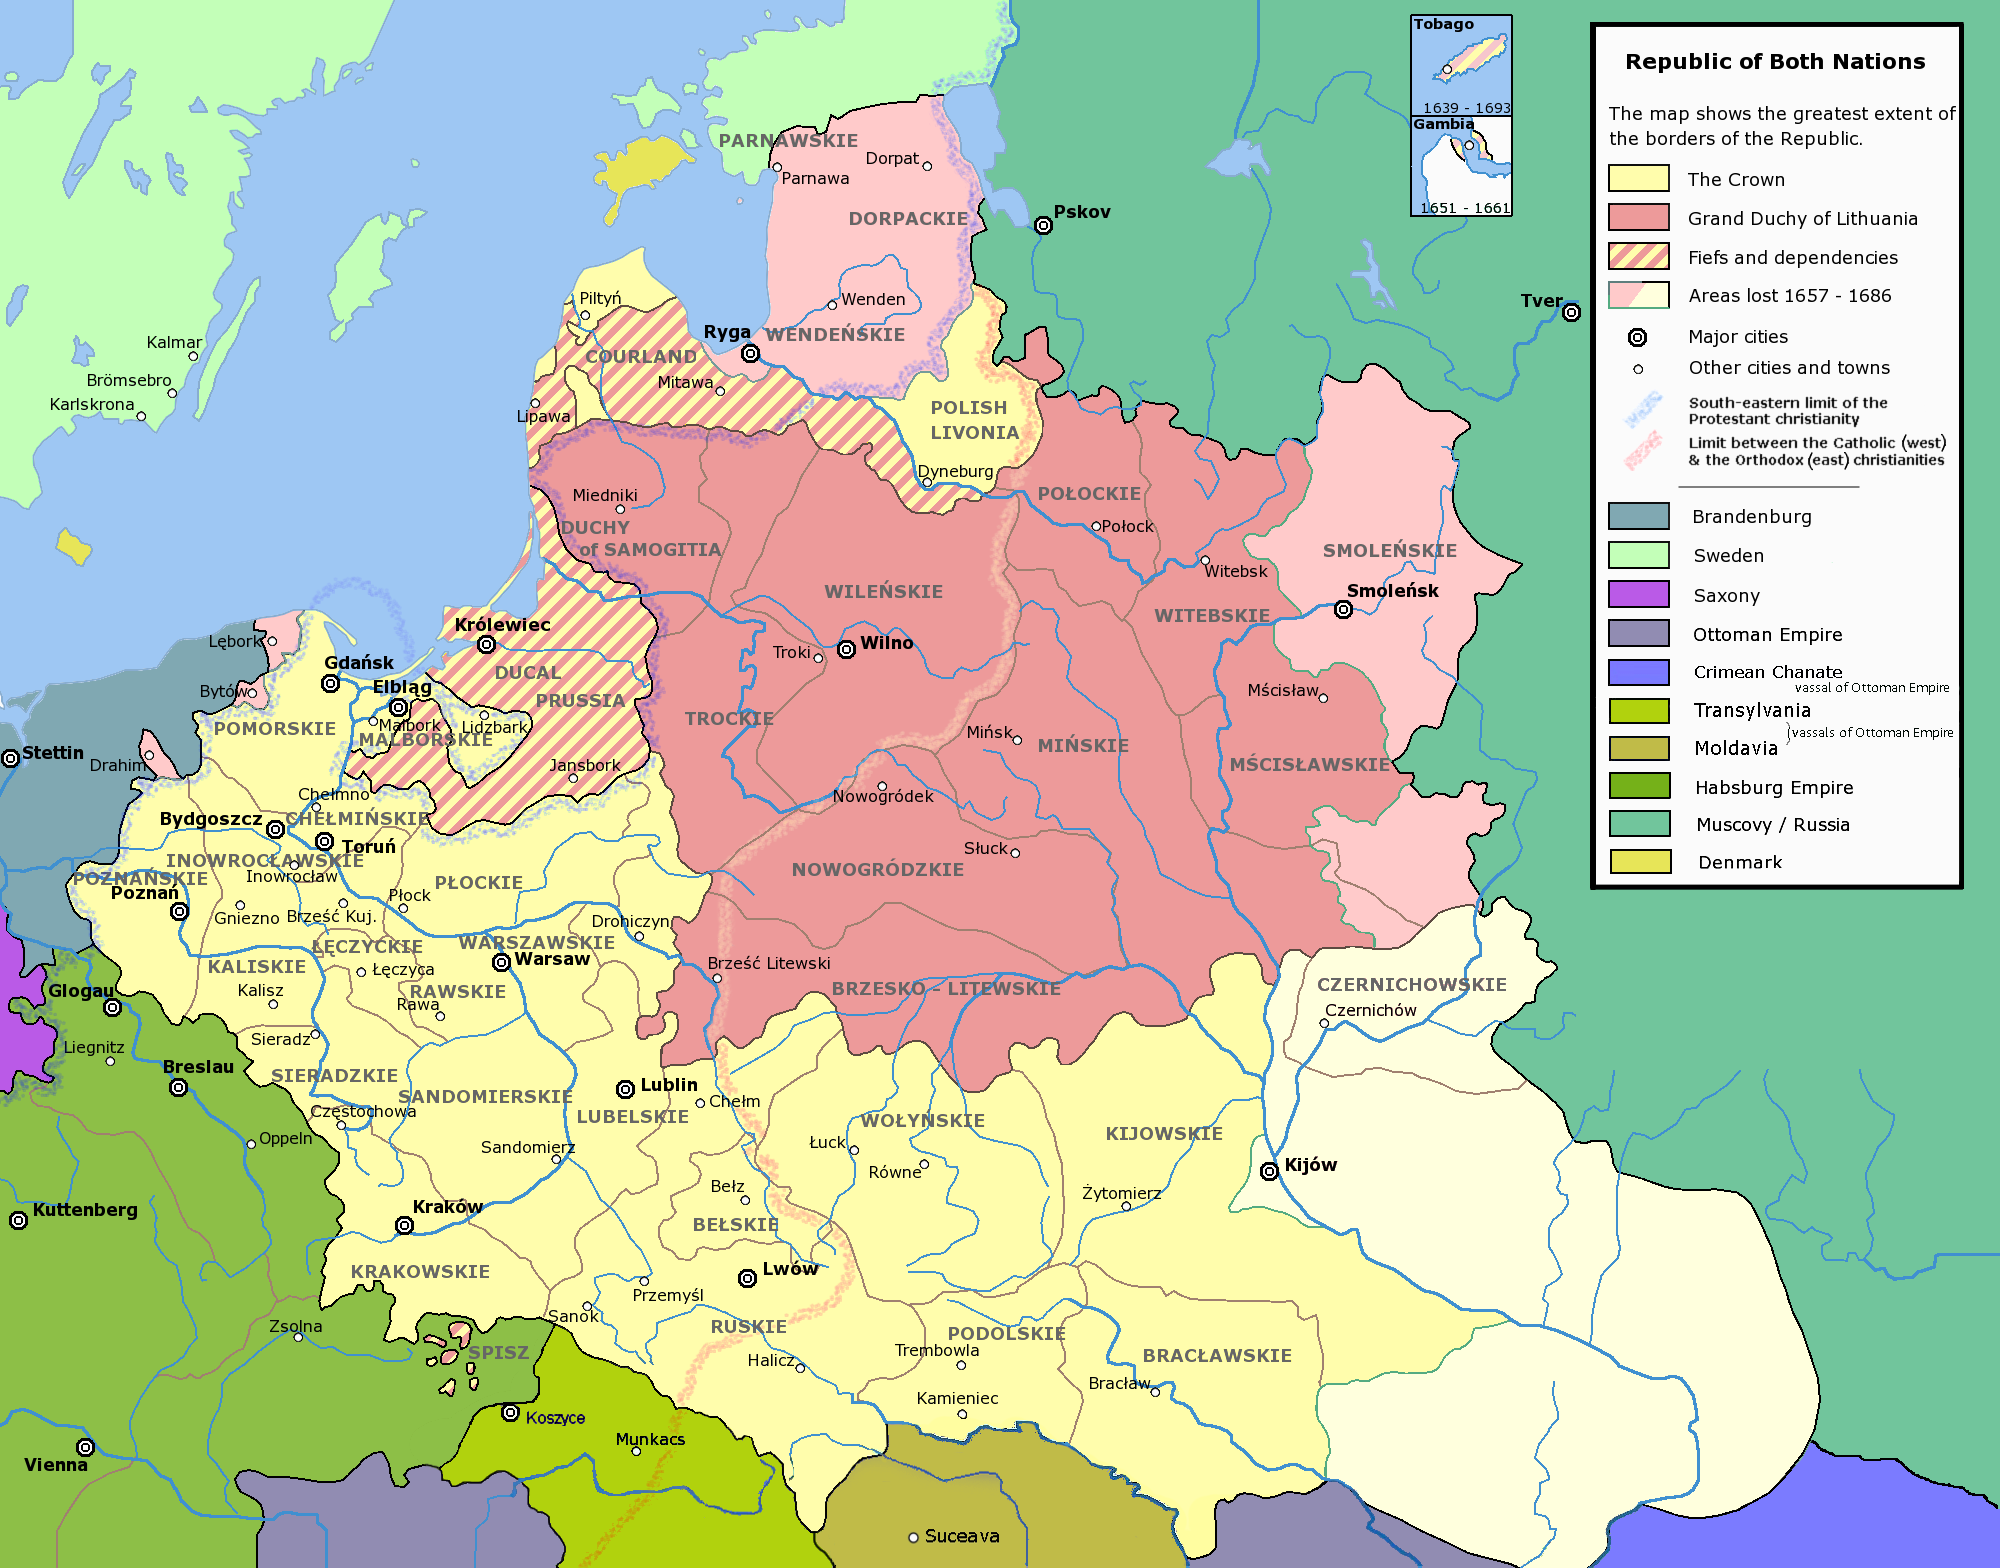 Lands that were once Russian 100